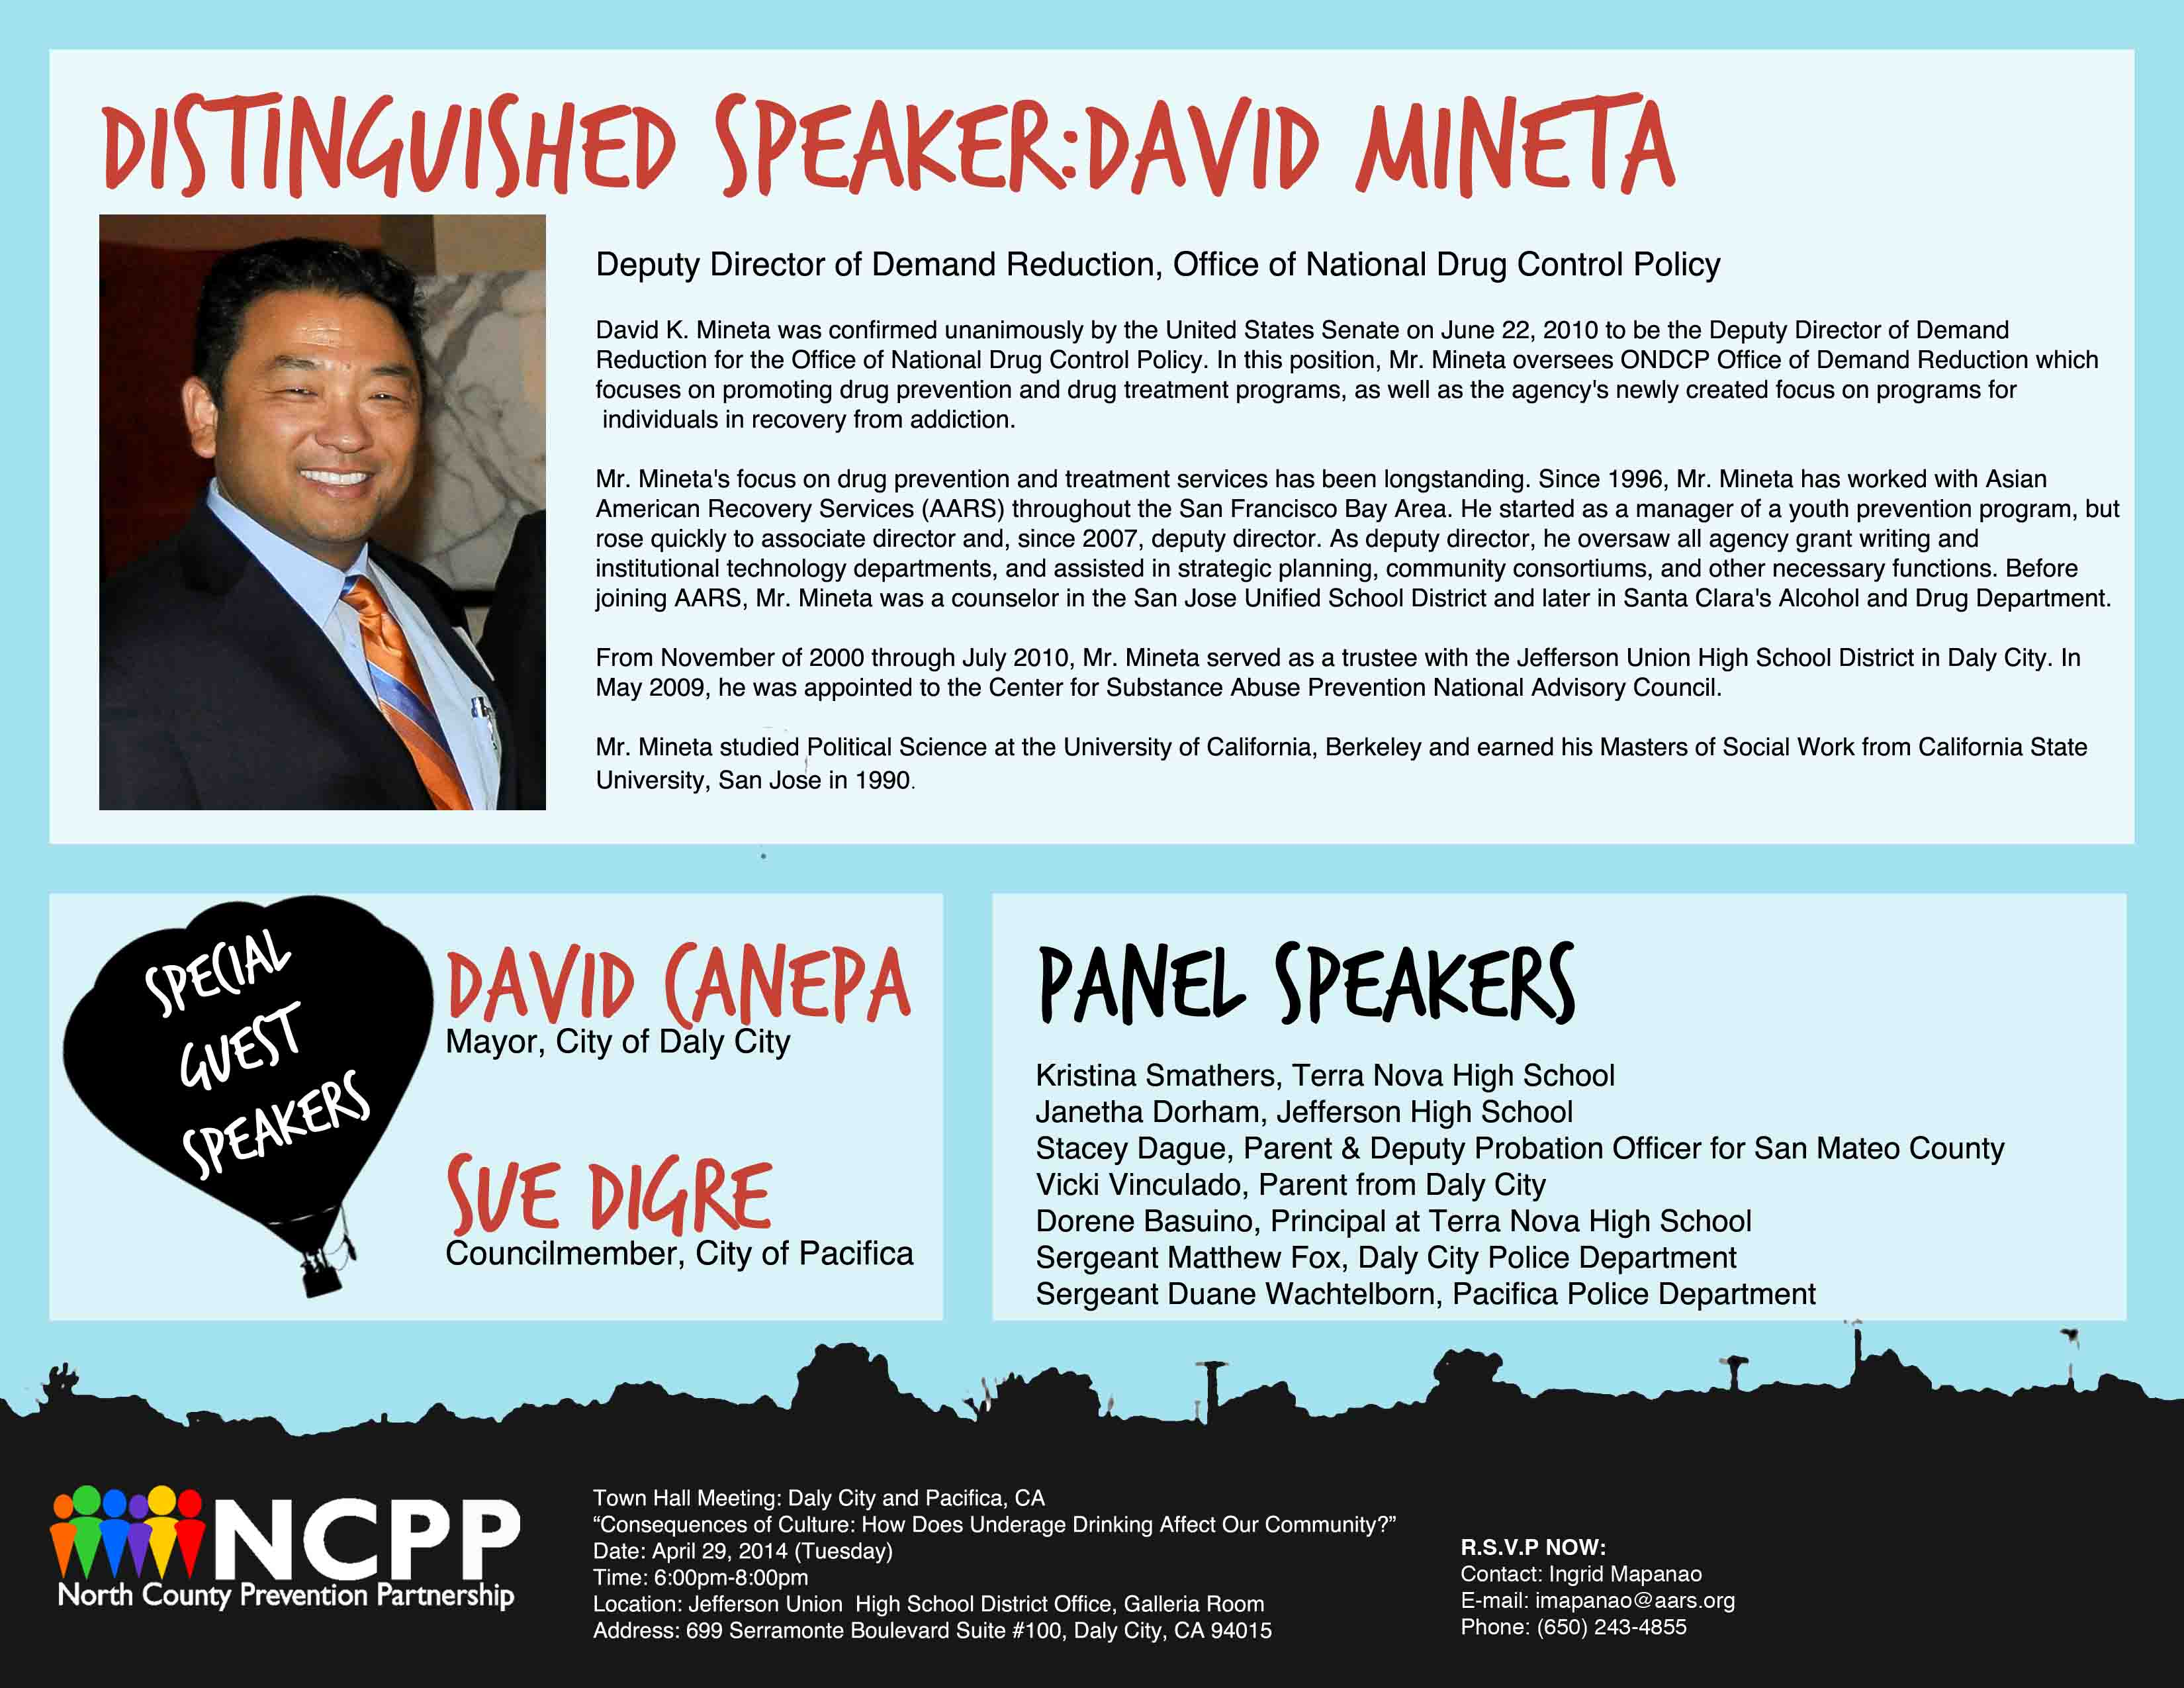 April 29 2014 NCPP Town Hall Meeting Announcement North County